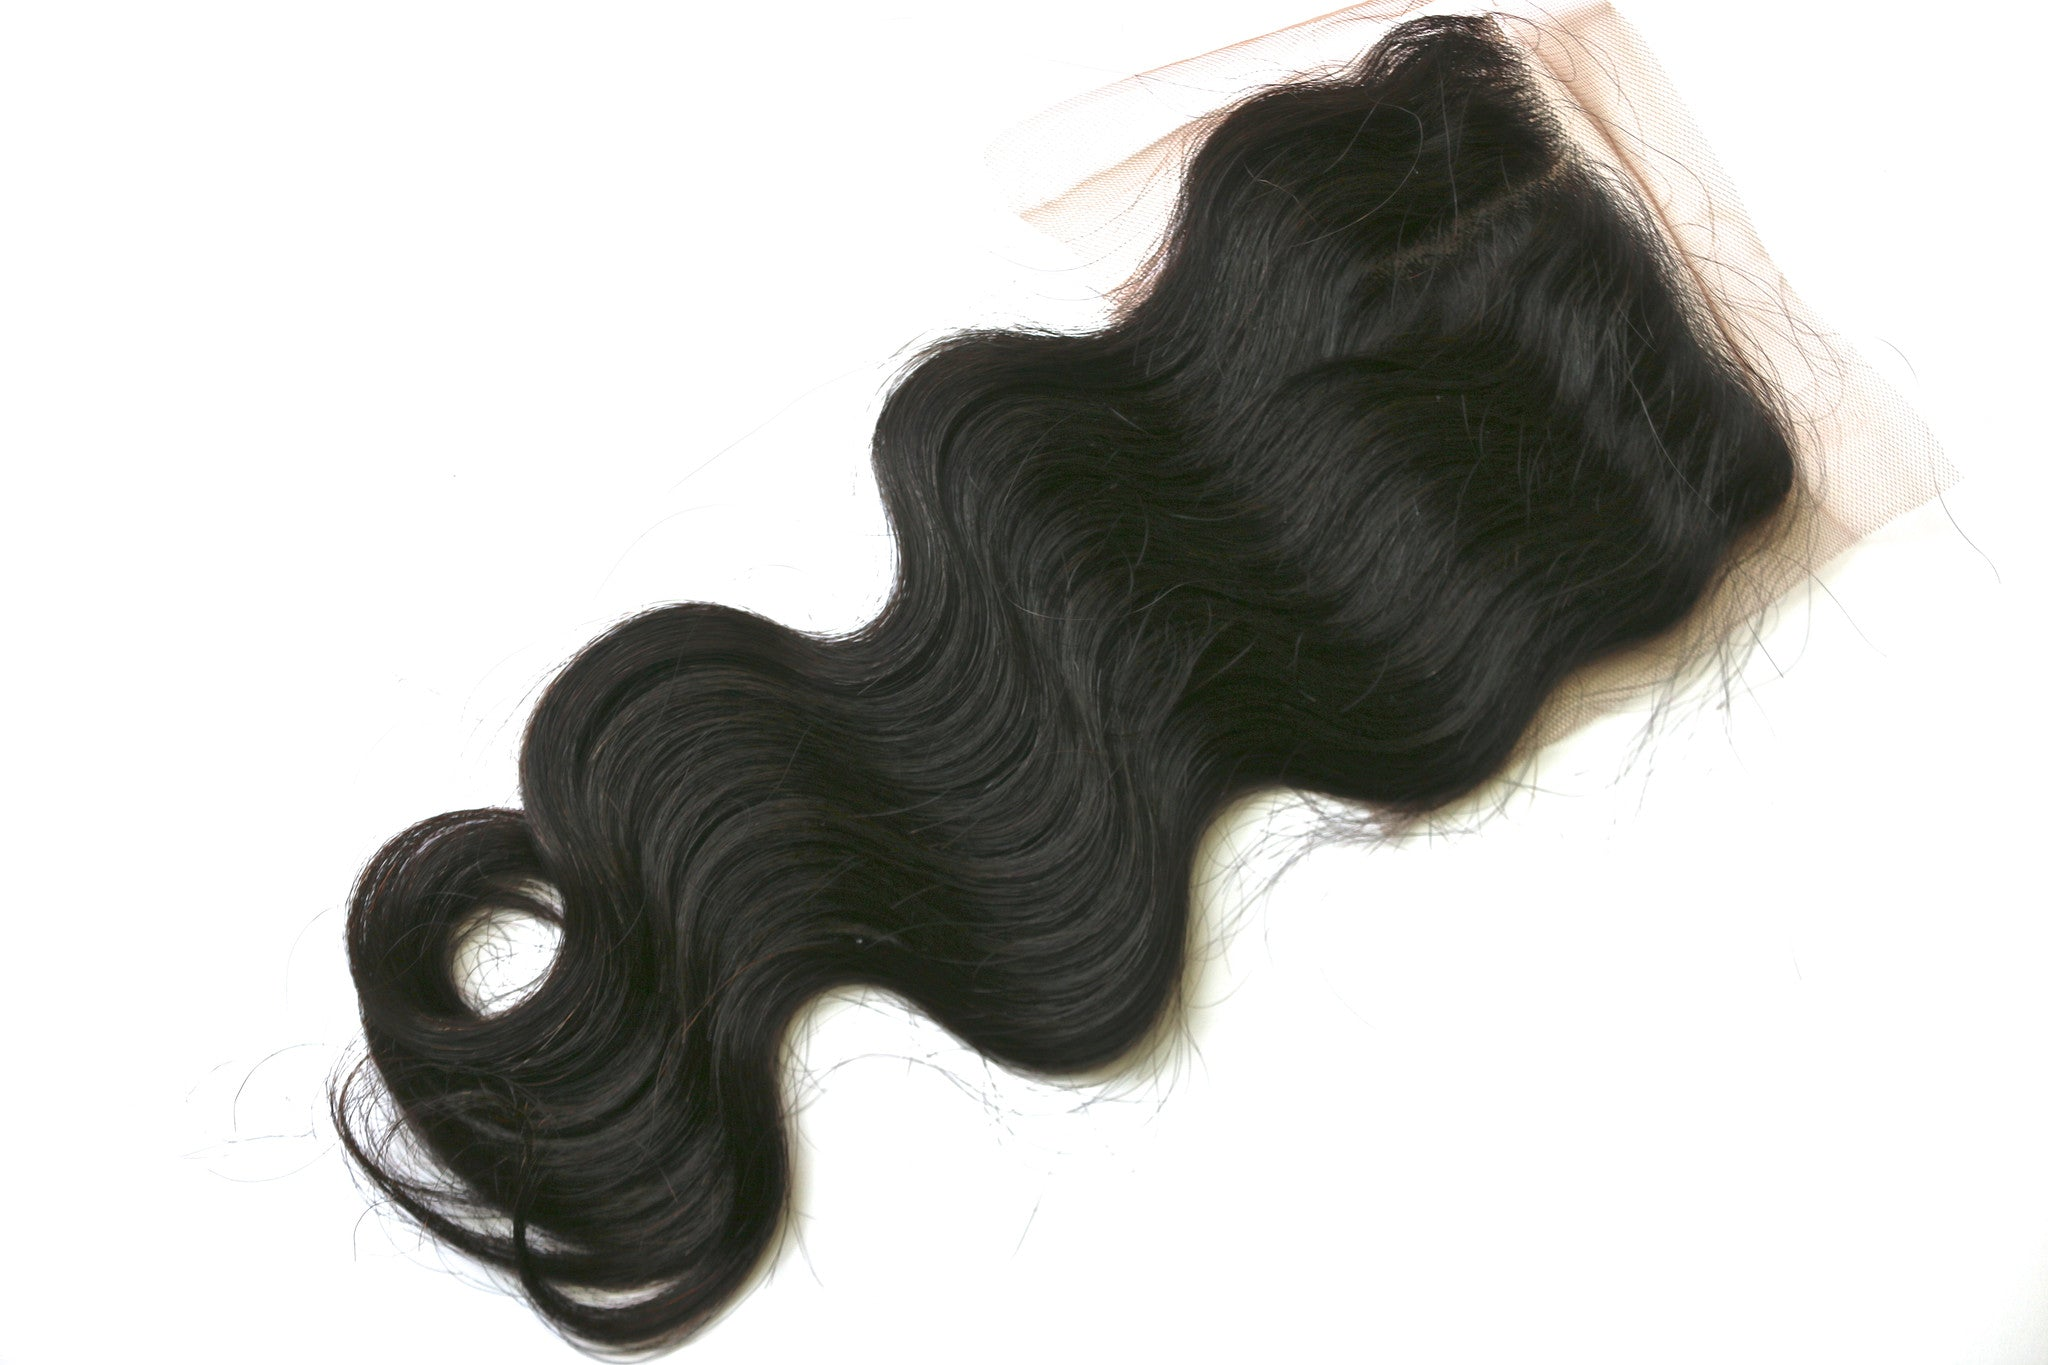 "THE RADIANCE EURASIAN WAVE CLOSURE 14"" CHRISTMAS SALE!"